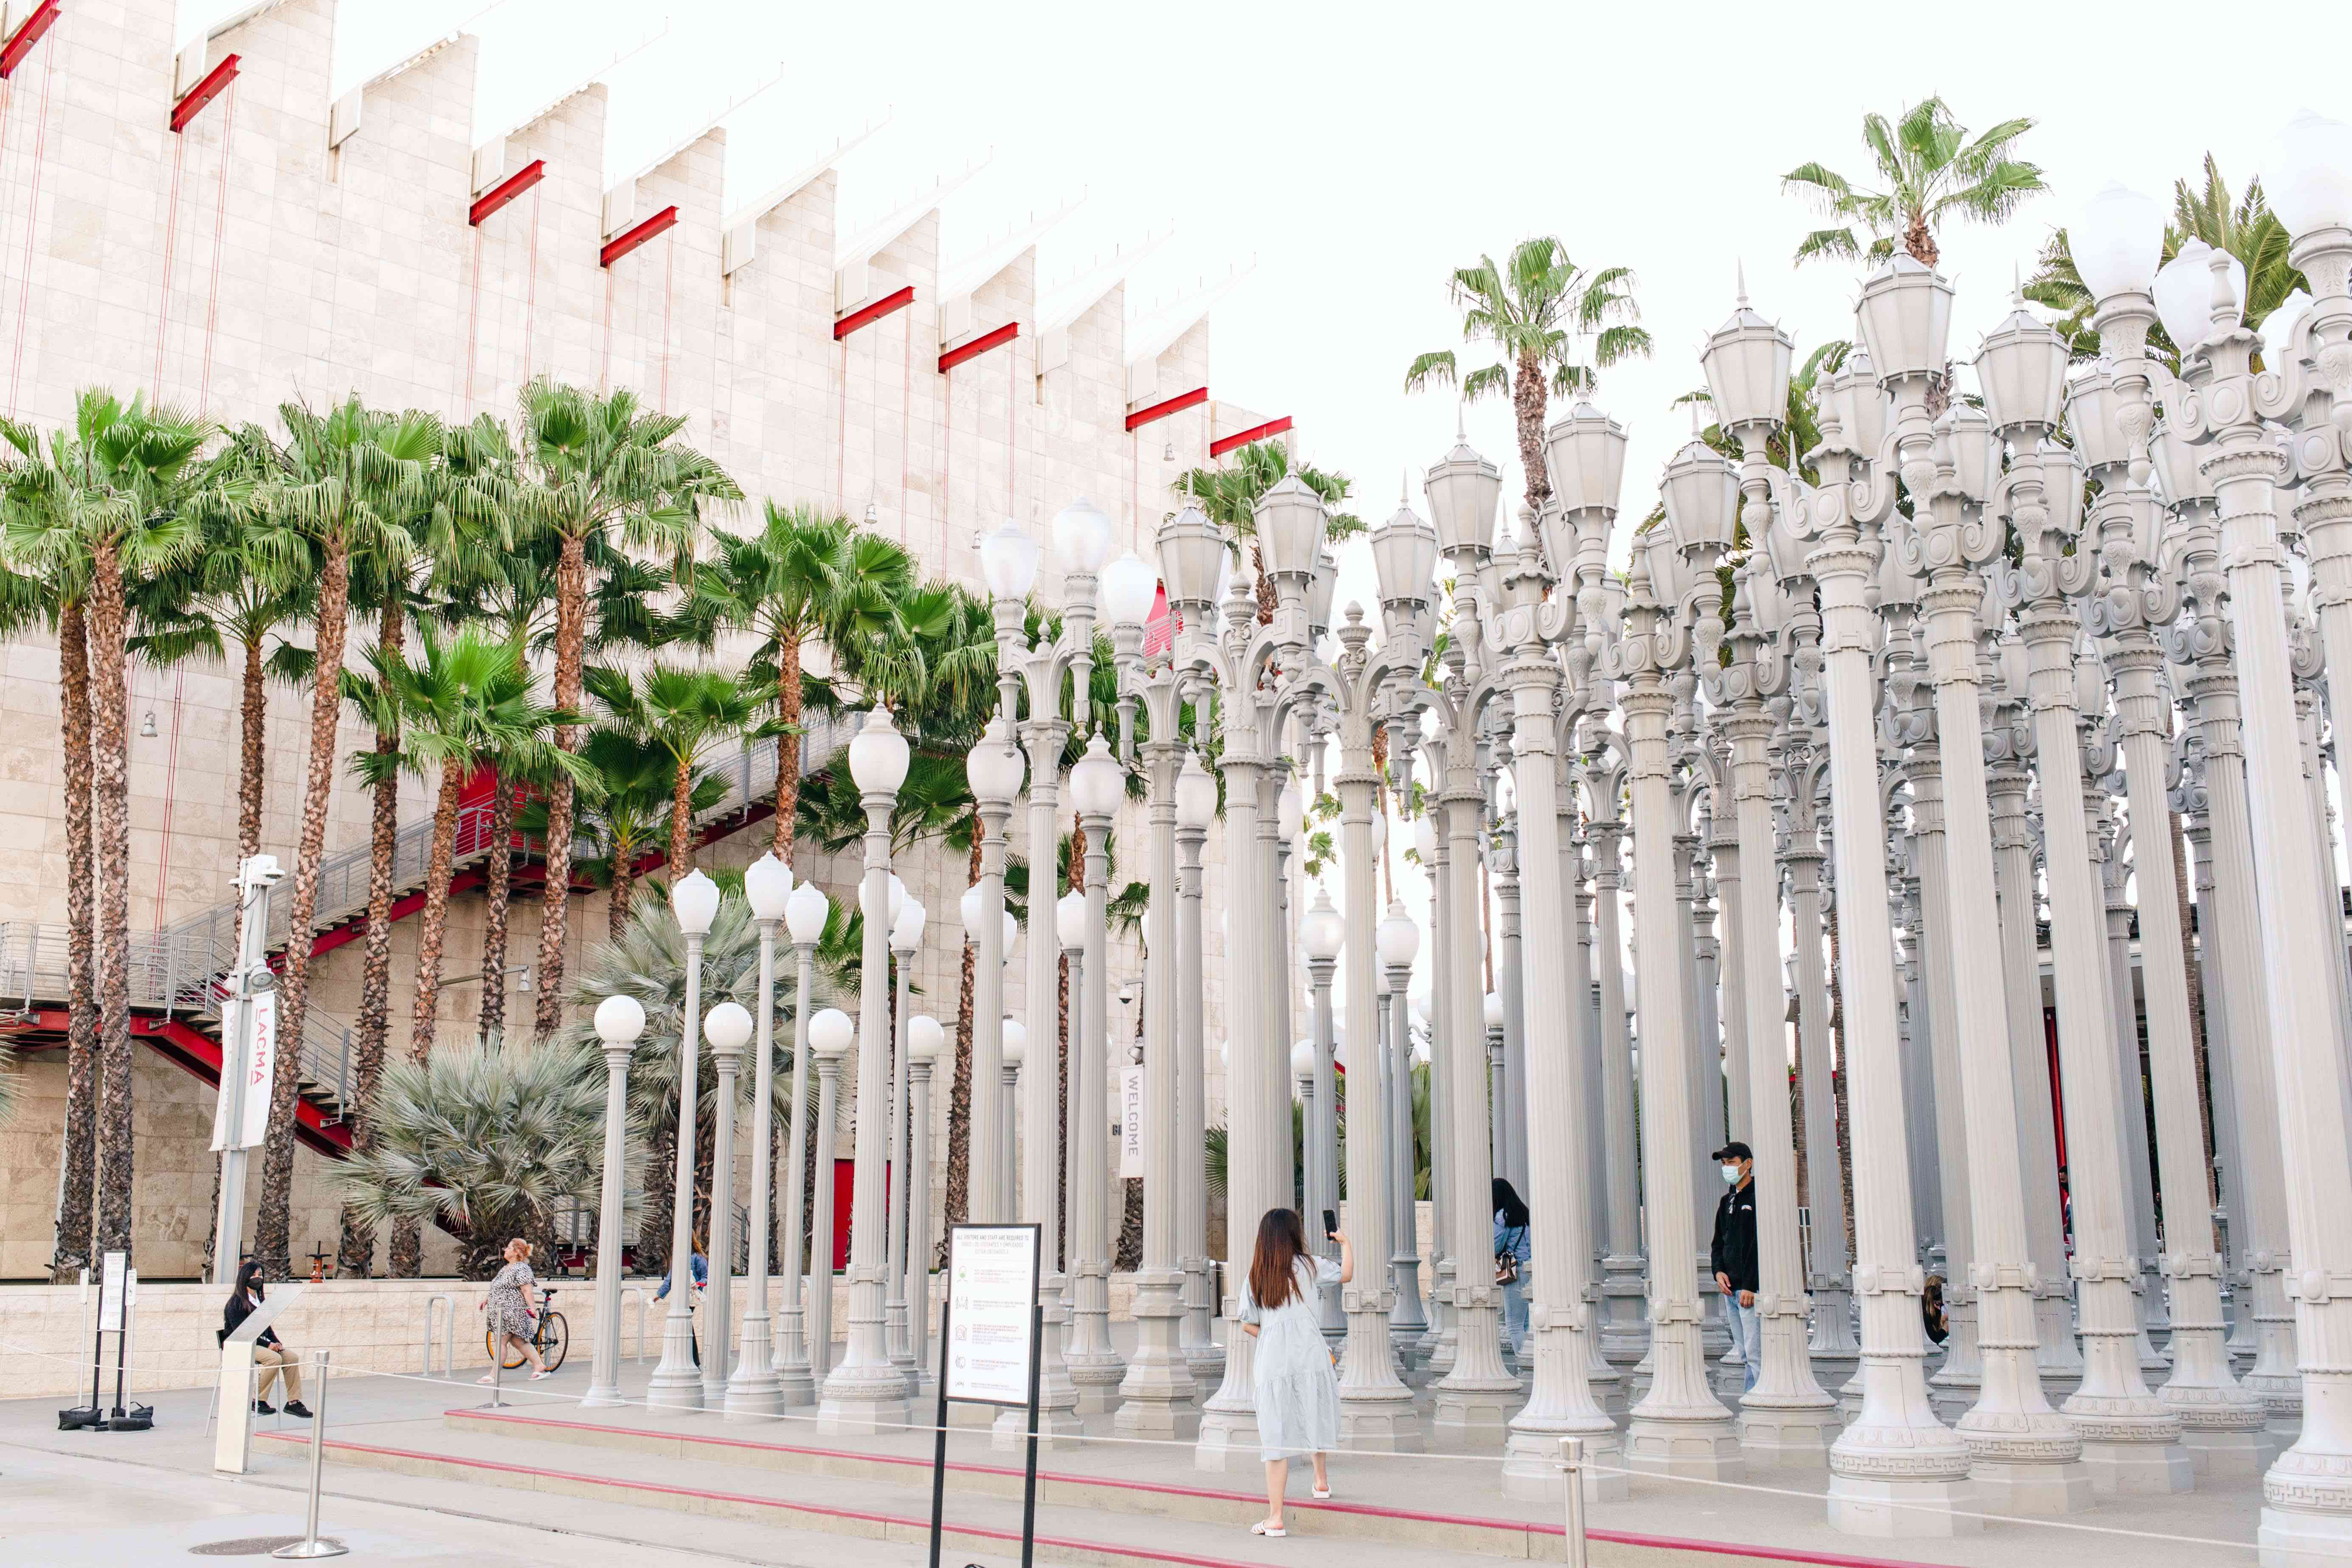 The Los Angeles County Museum of Art (LACMA) in California